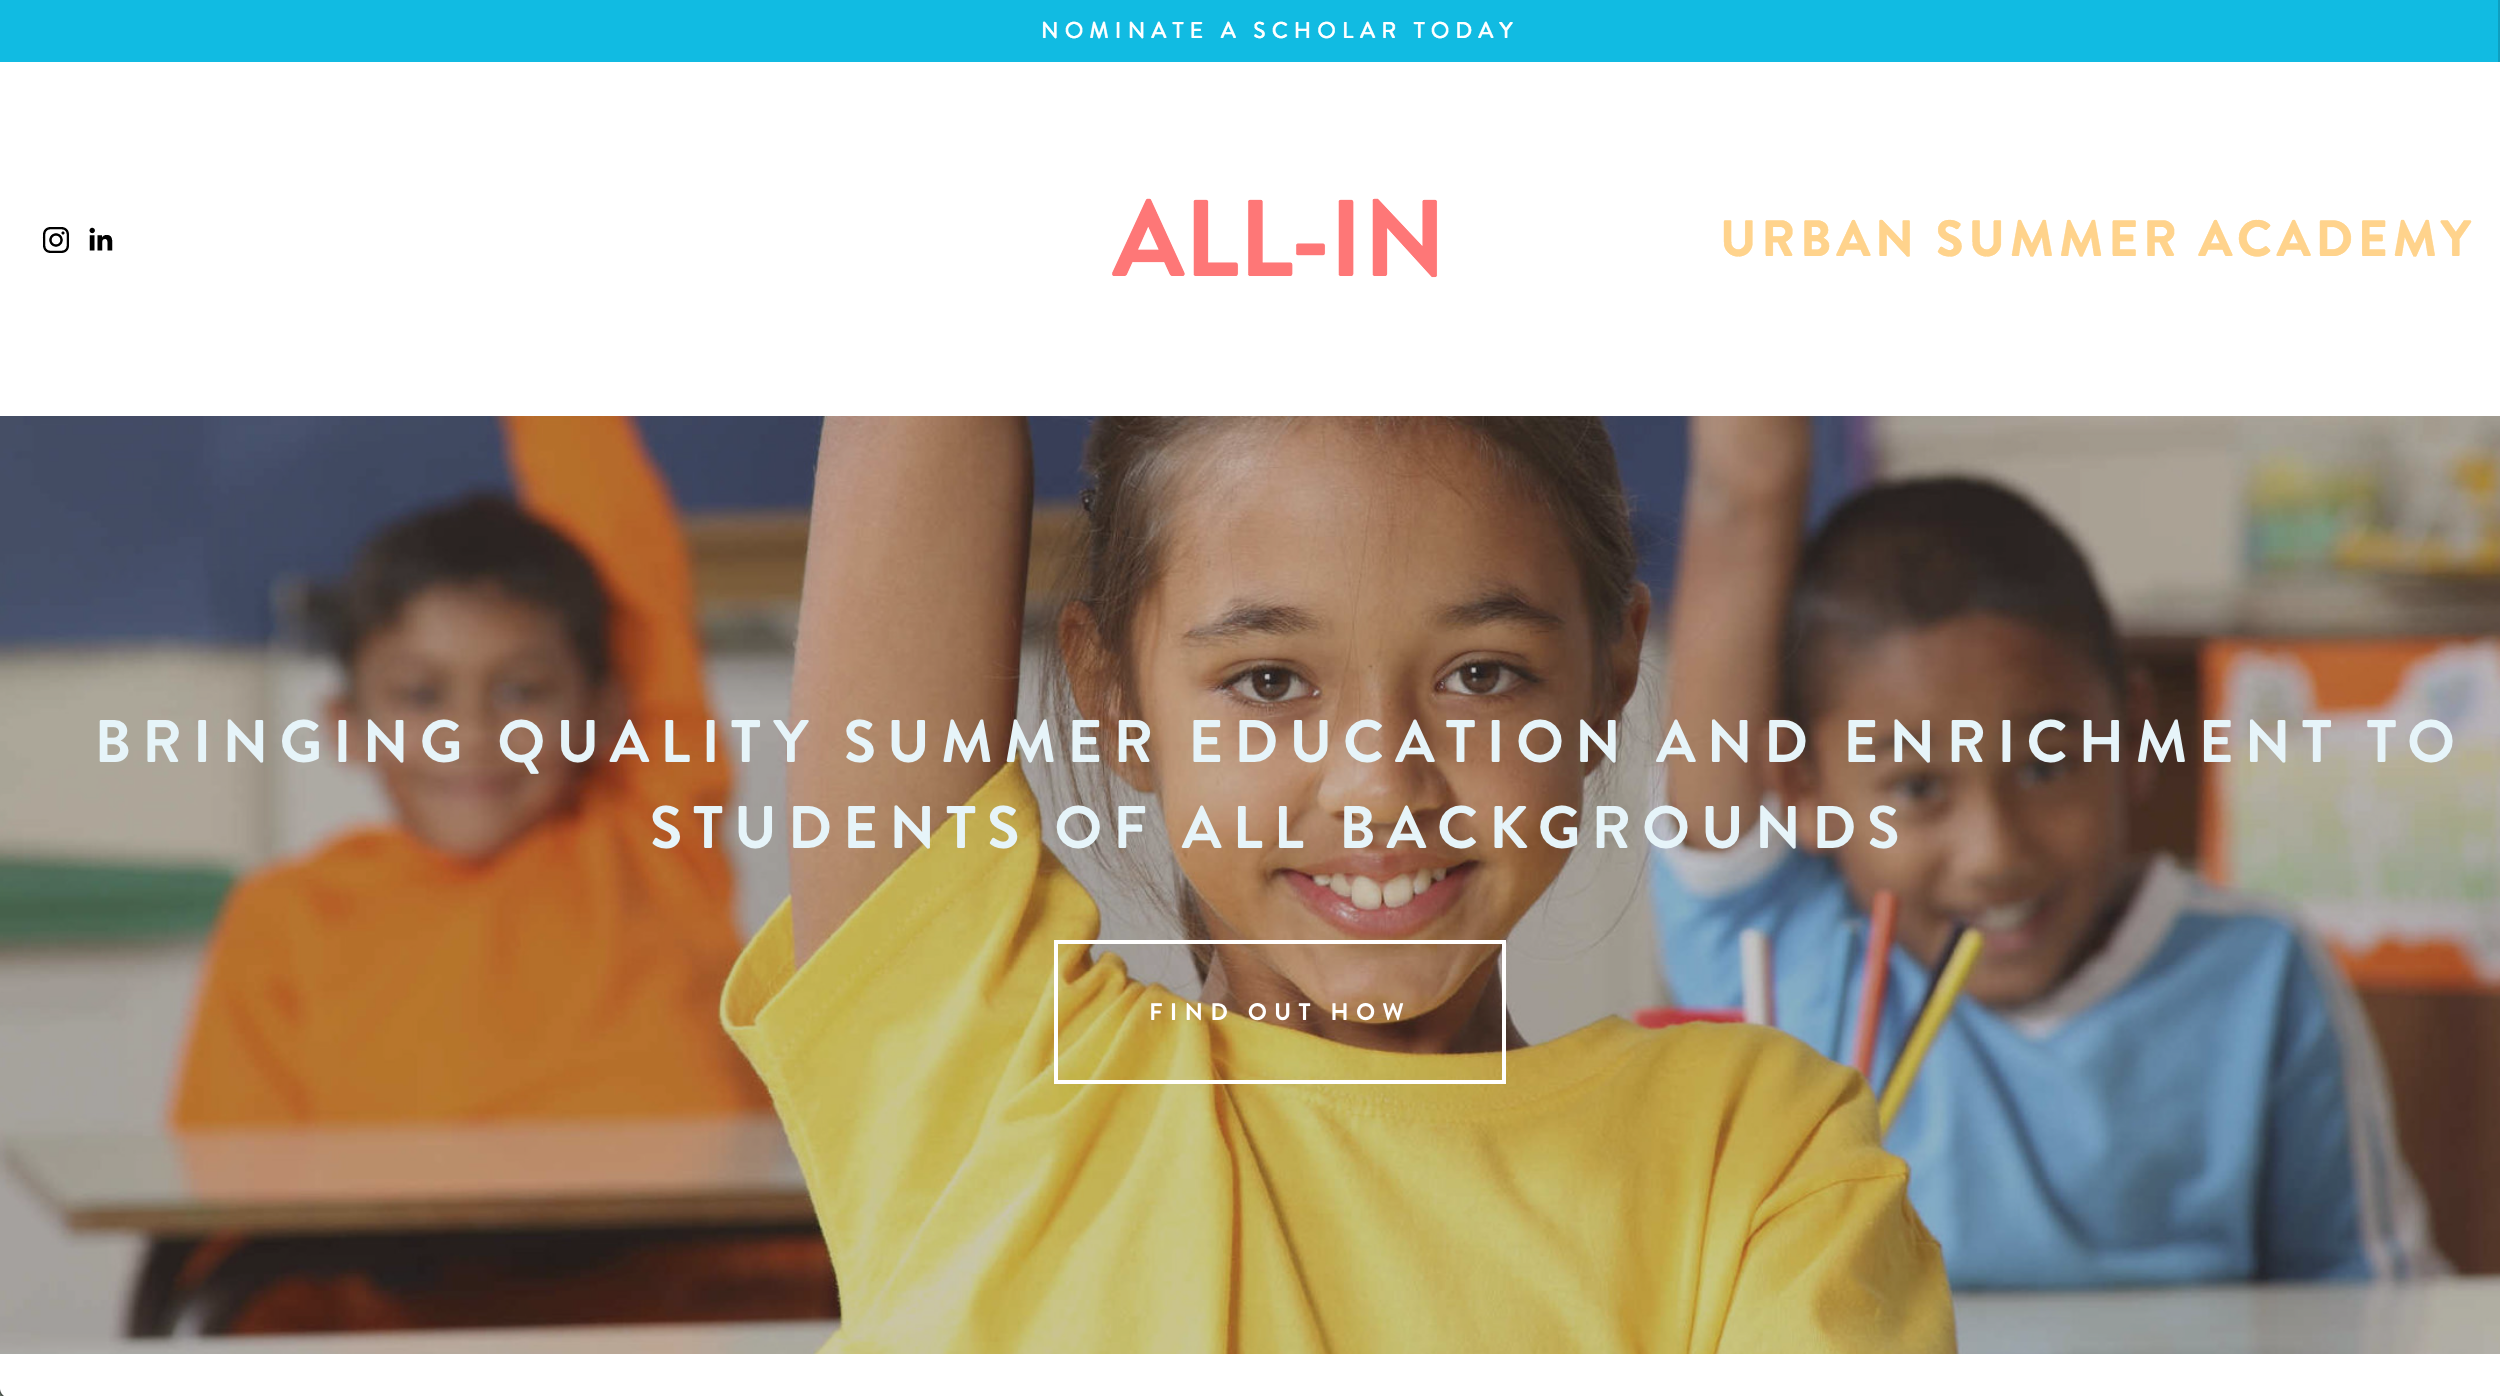 All-In Urban Summer Academy